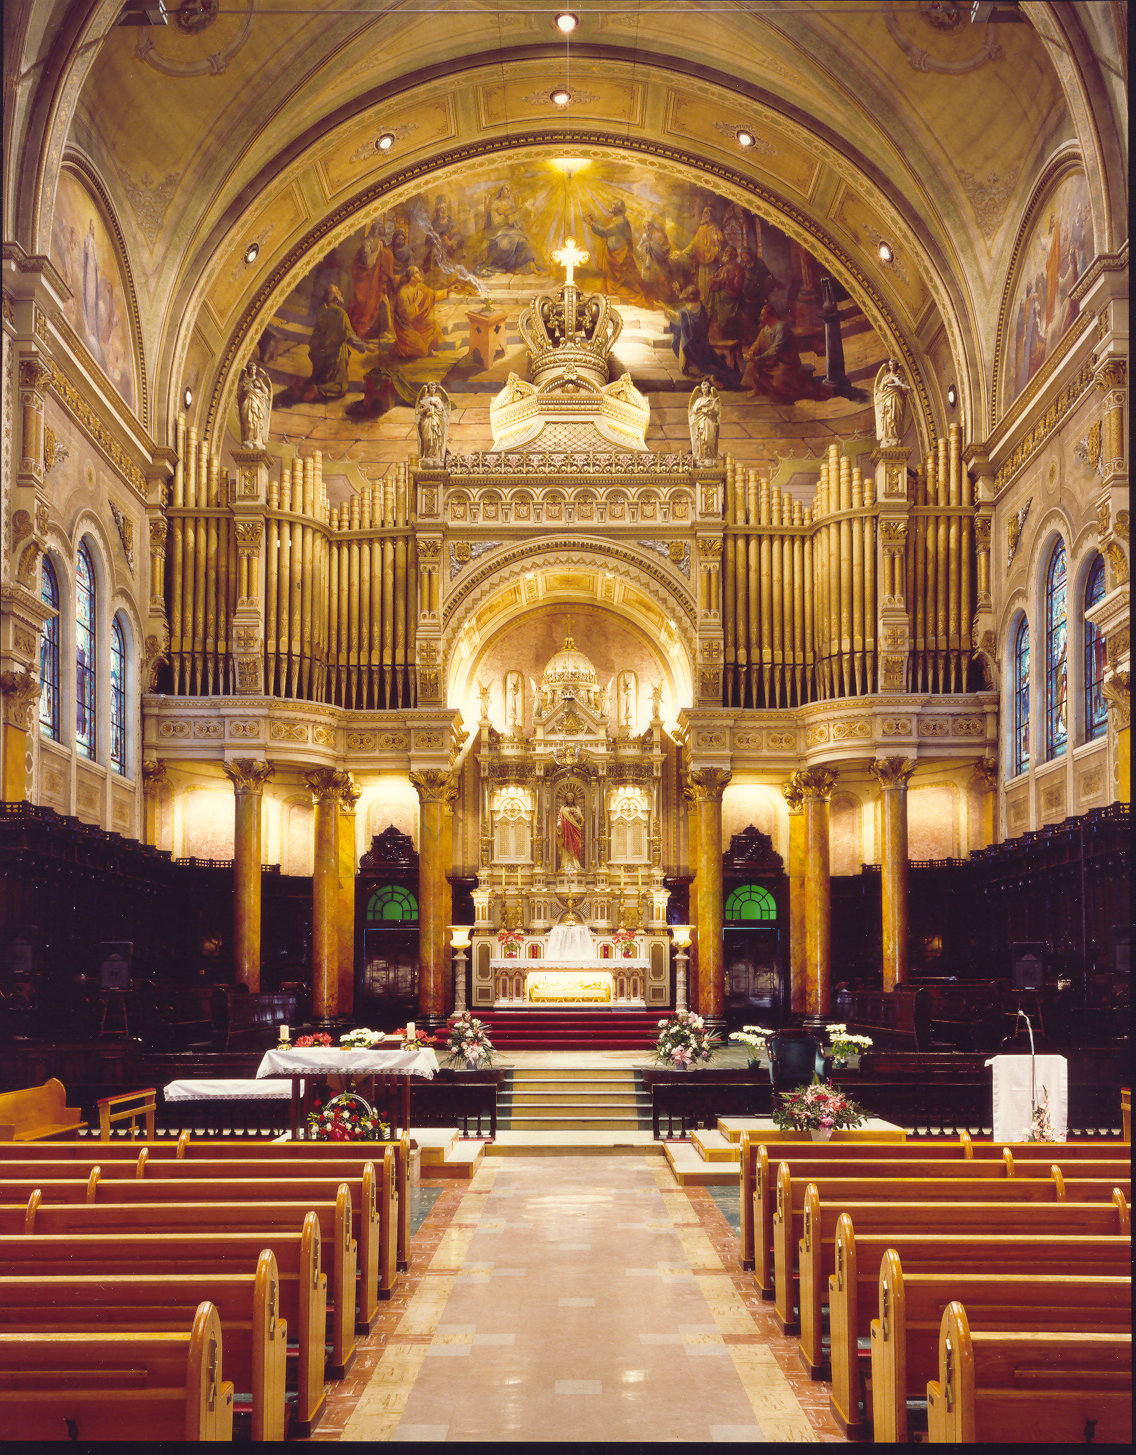 Chancel Organ, Casavant Opus 600, 1915, Church of Très-Saint-Nom-de-Jésus, Montréal, QC